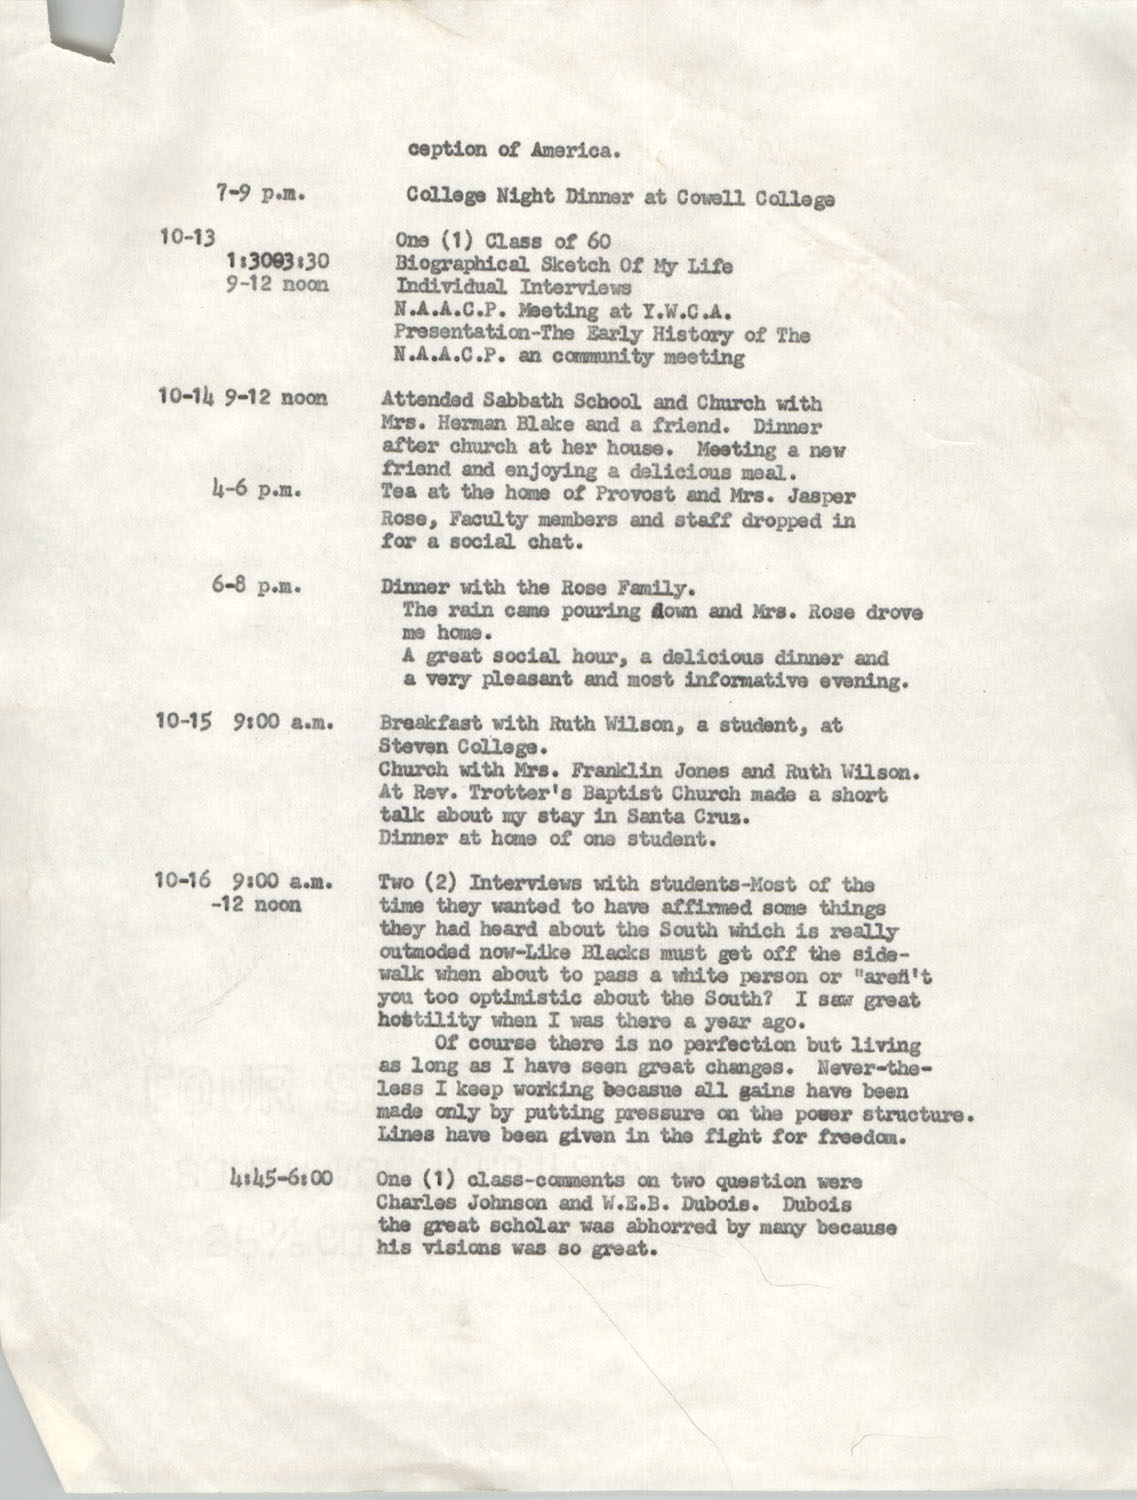 Schedule for Sojourn in Santa Cruz, College Seven, October 8 to November 1, 1972, Page 8